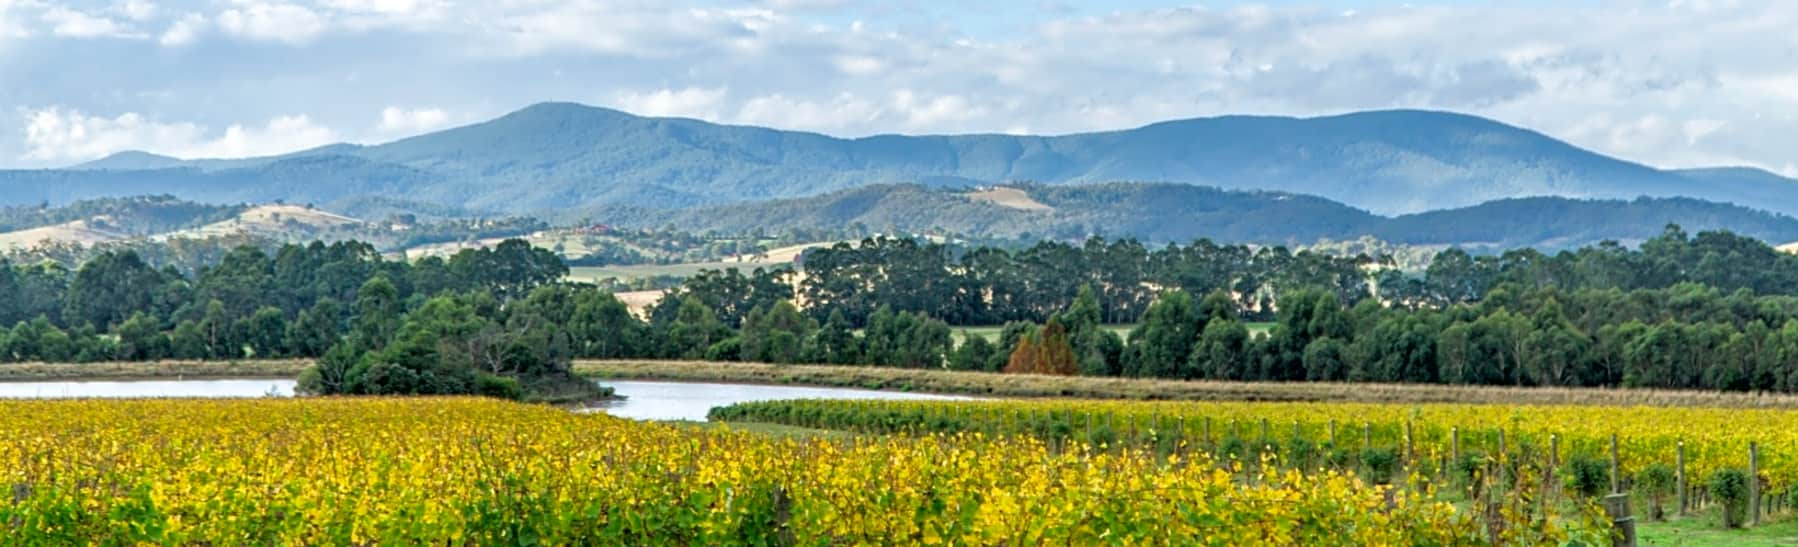 Yarra Valley Wineries & Killara Estate Tour – Full Day gallery